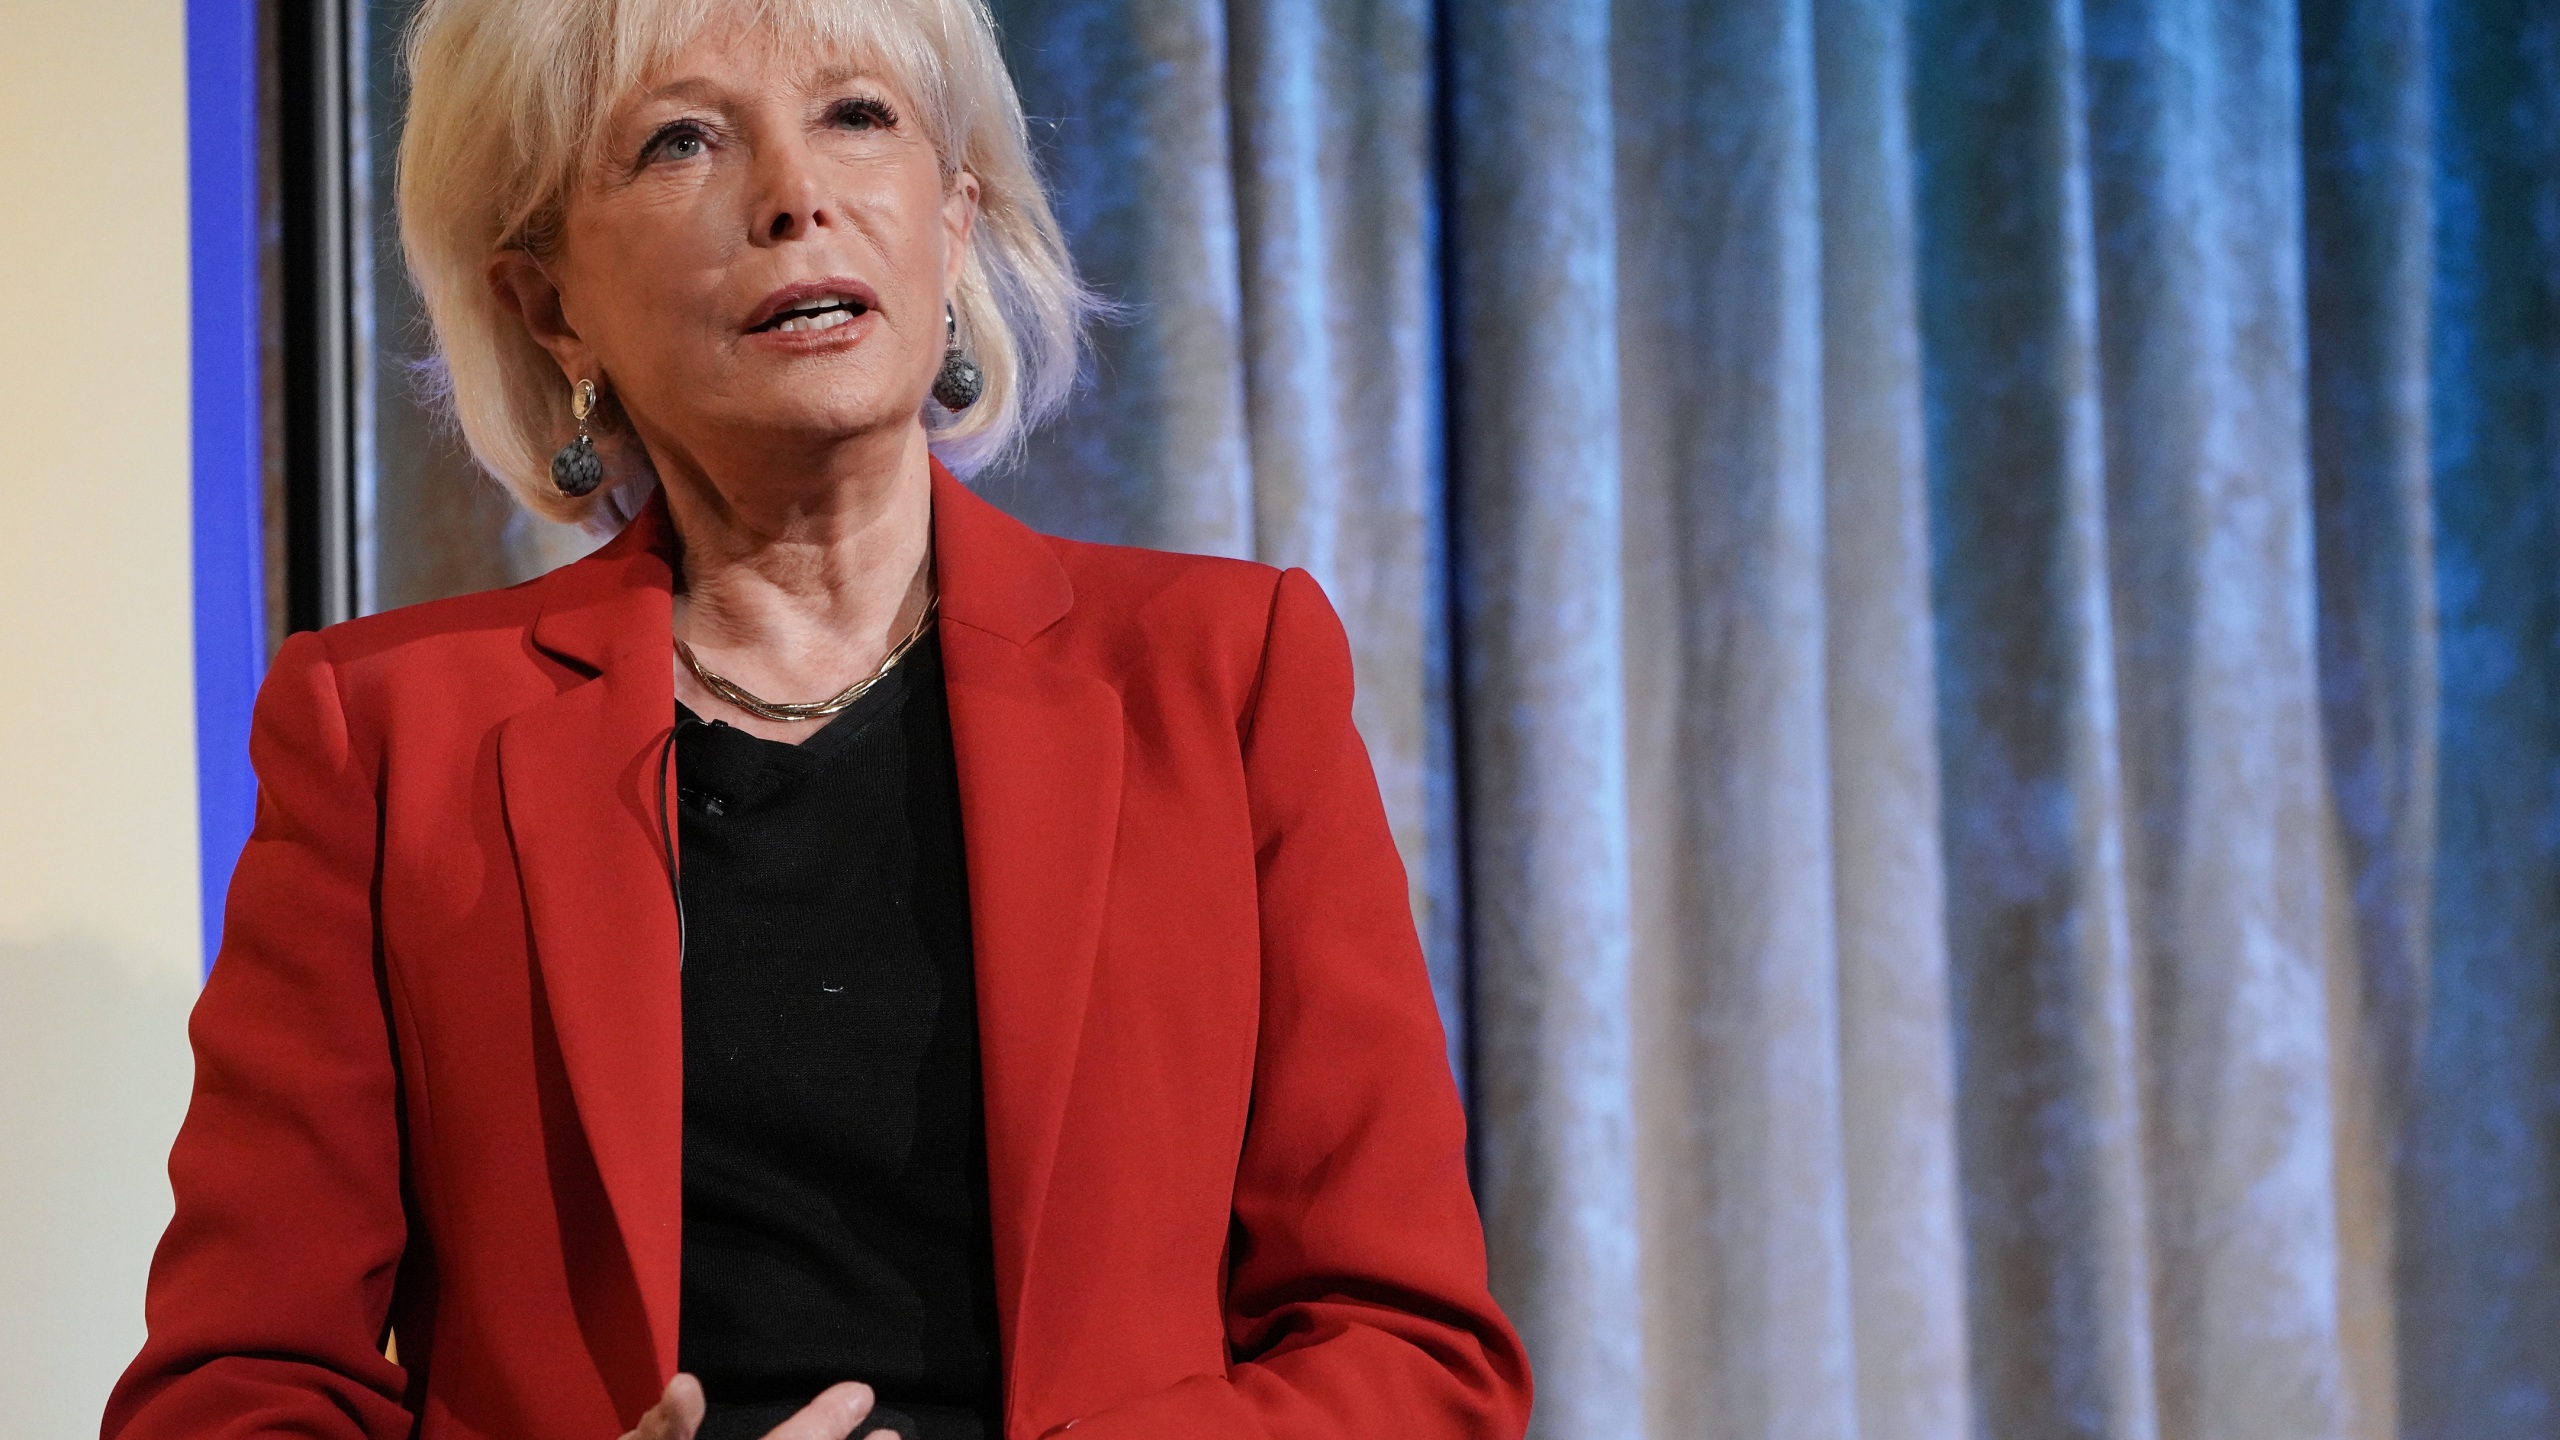 Journalist Lesley Stahl speaks onstage at the 13th Annual (Em)Power Breakfast on October 10, 2019, in New York City. (Jemal Countess/Getty Images for Student Leadership Network)